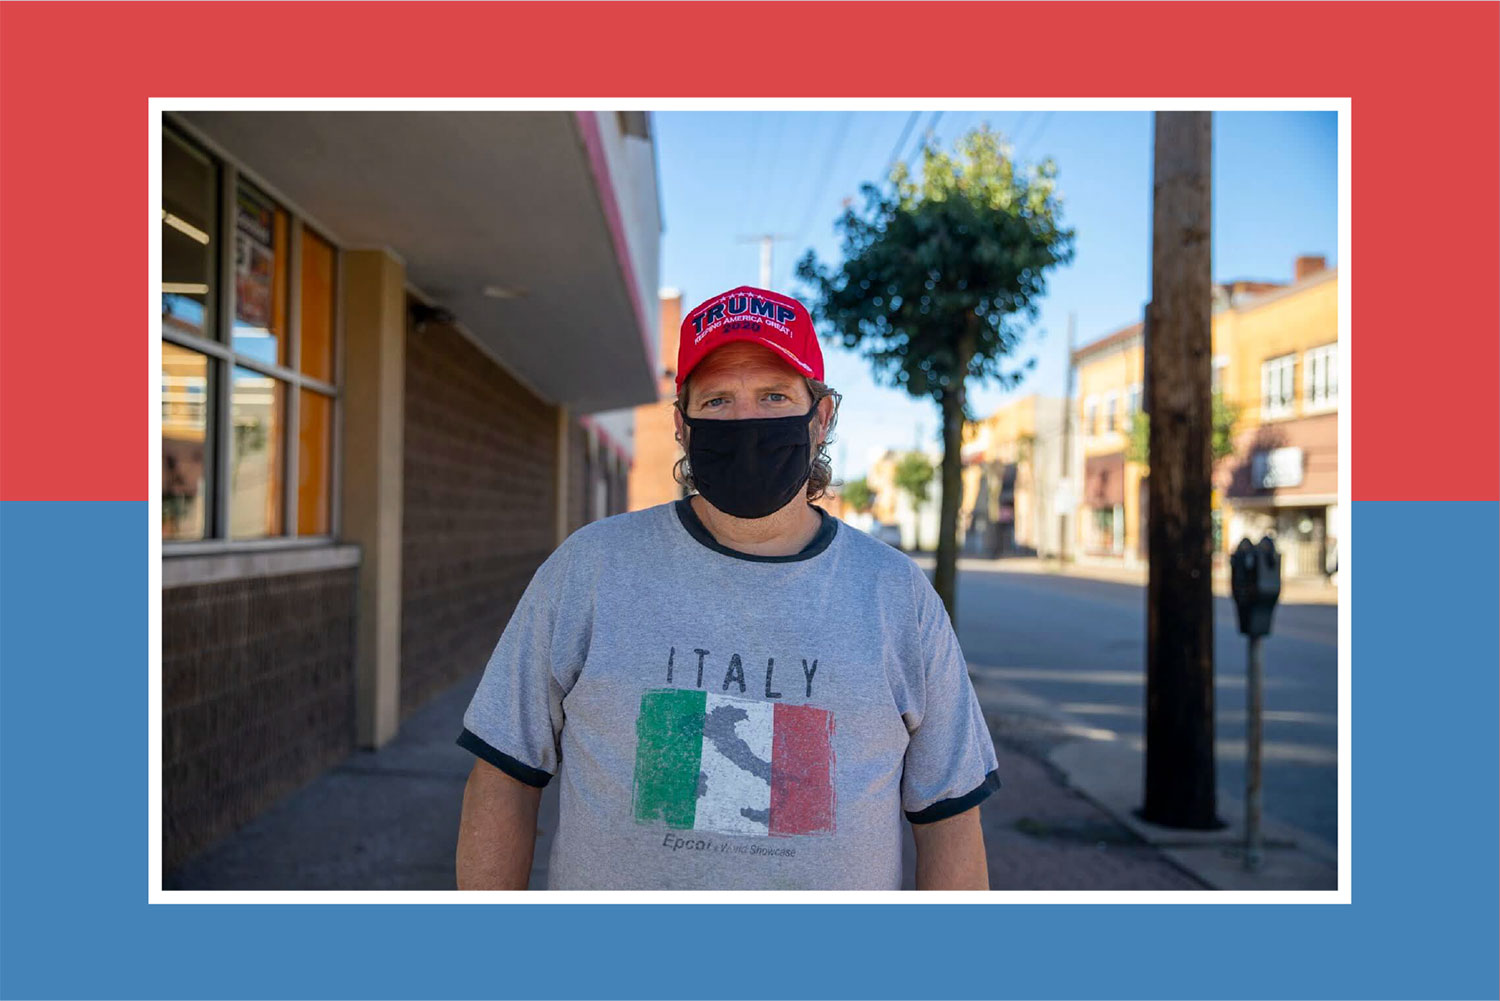 Jim Rocco in a gray shirt that says ITALY stands on a street in Glassport wearing a red TRUMP hat.